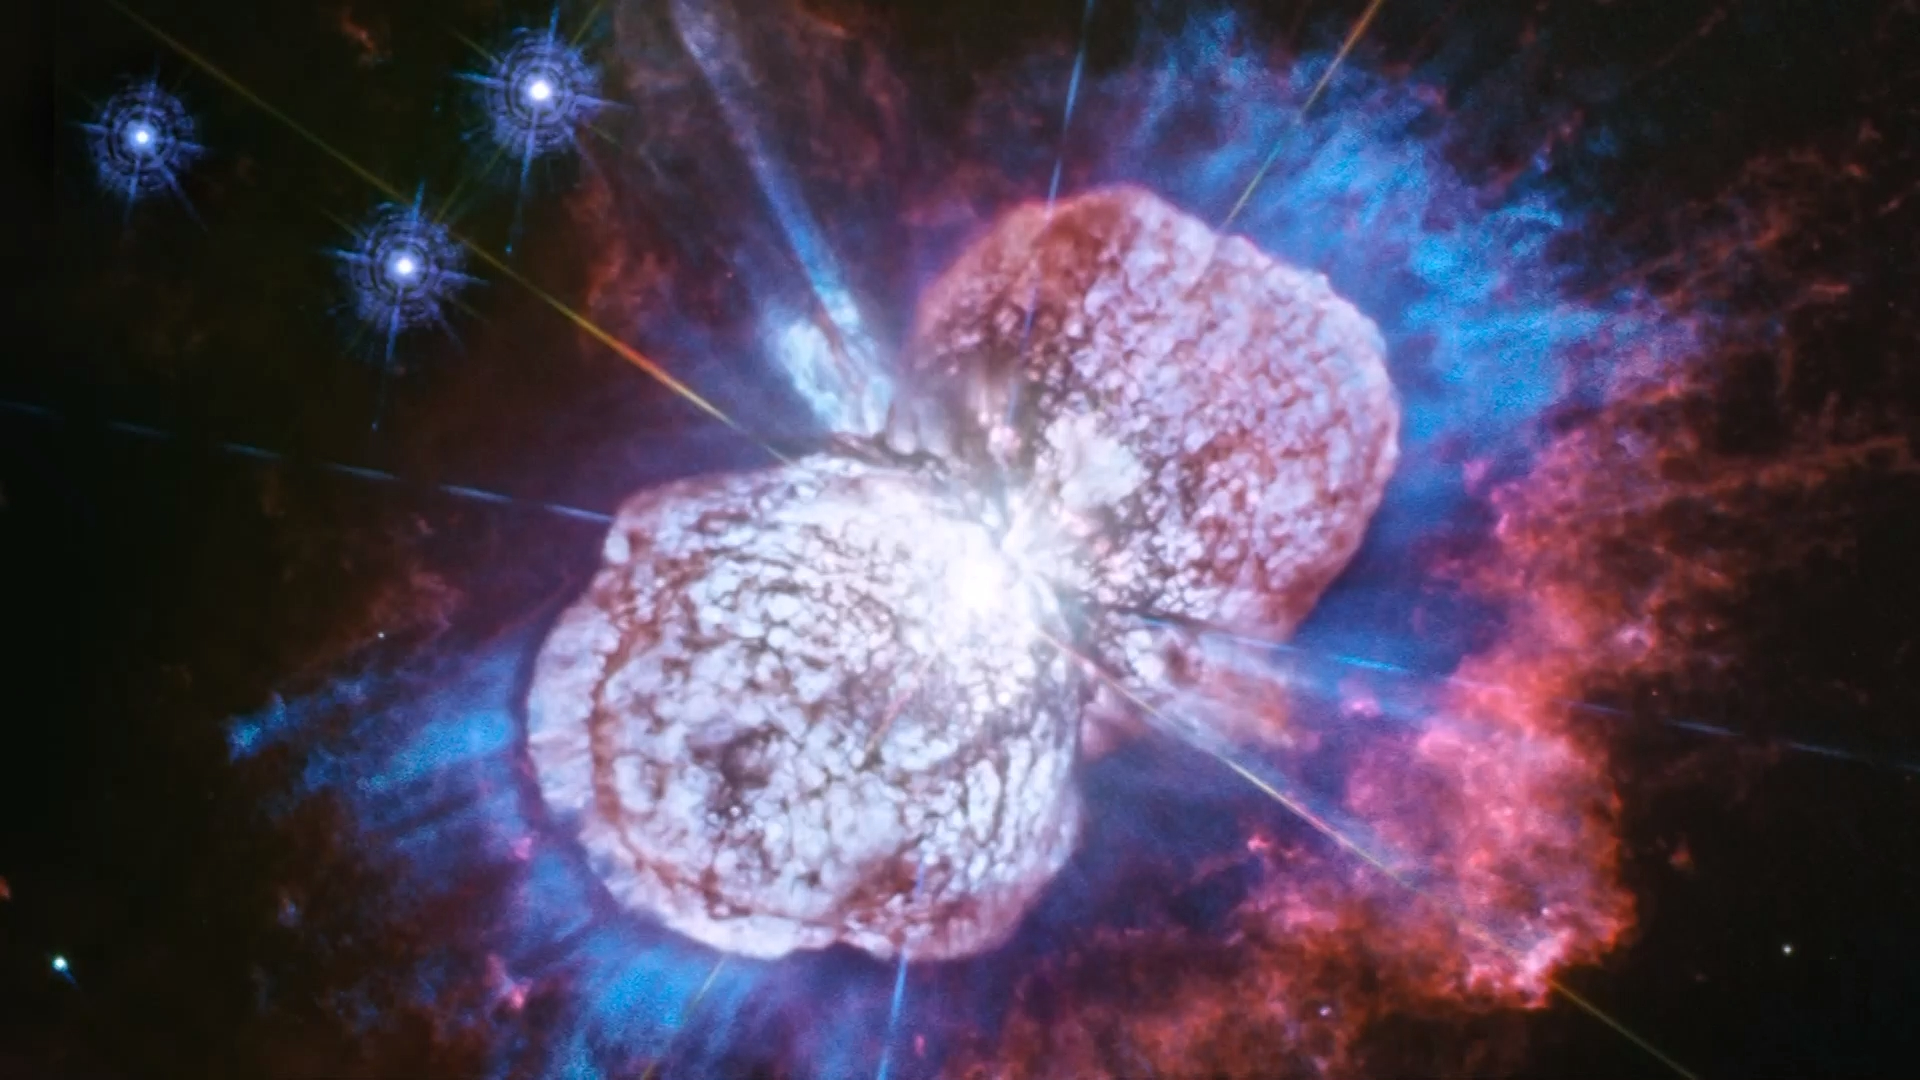 New photo captures Eta Carinae's fireworks show